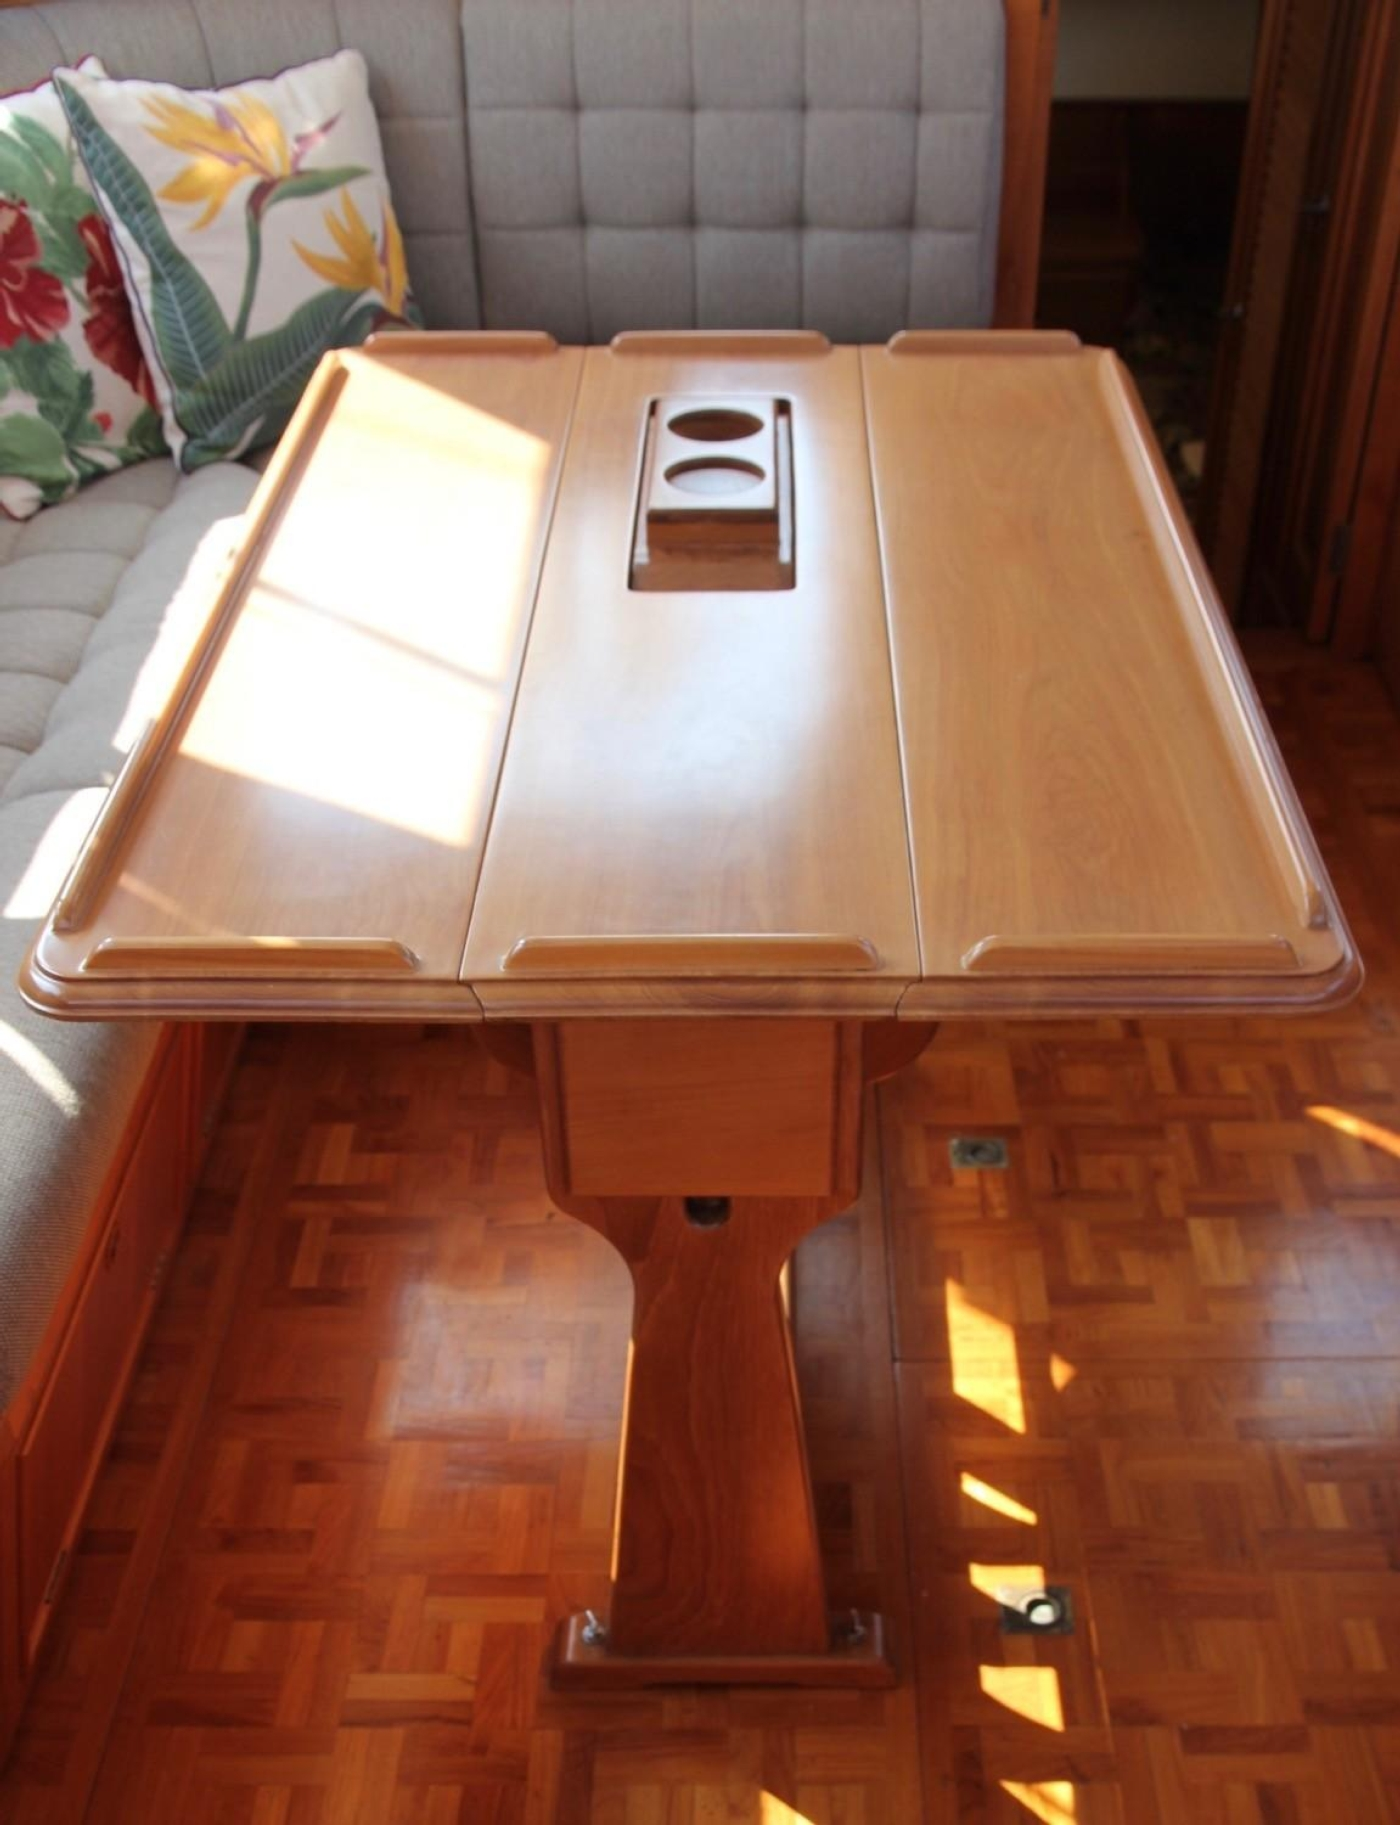 1995 Grand Banks Classic, Folding Yacht Table